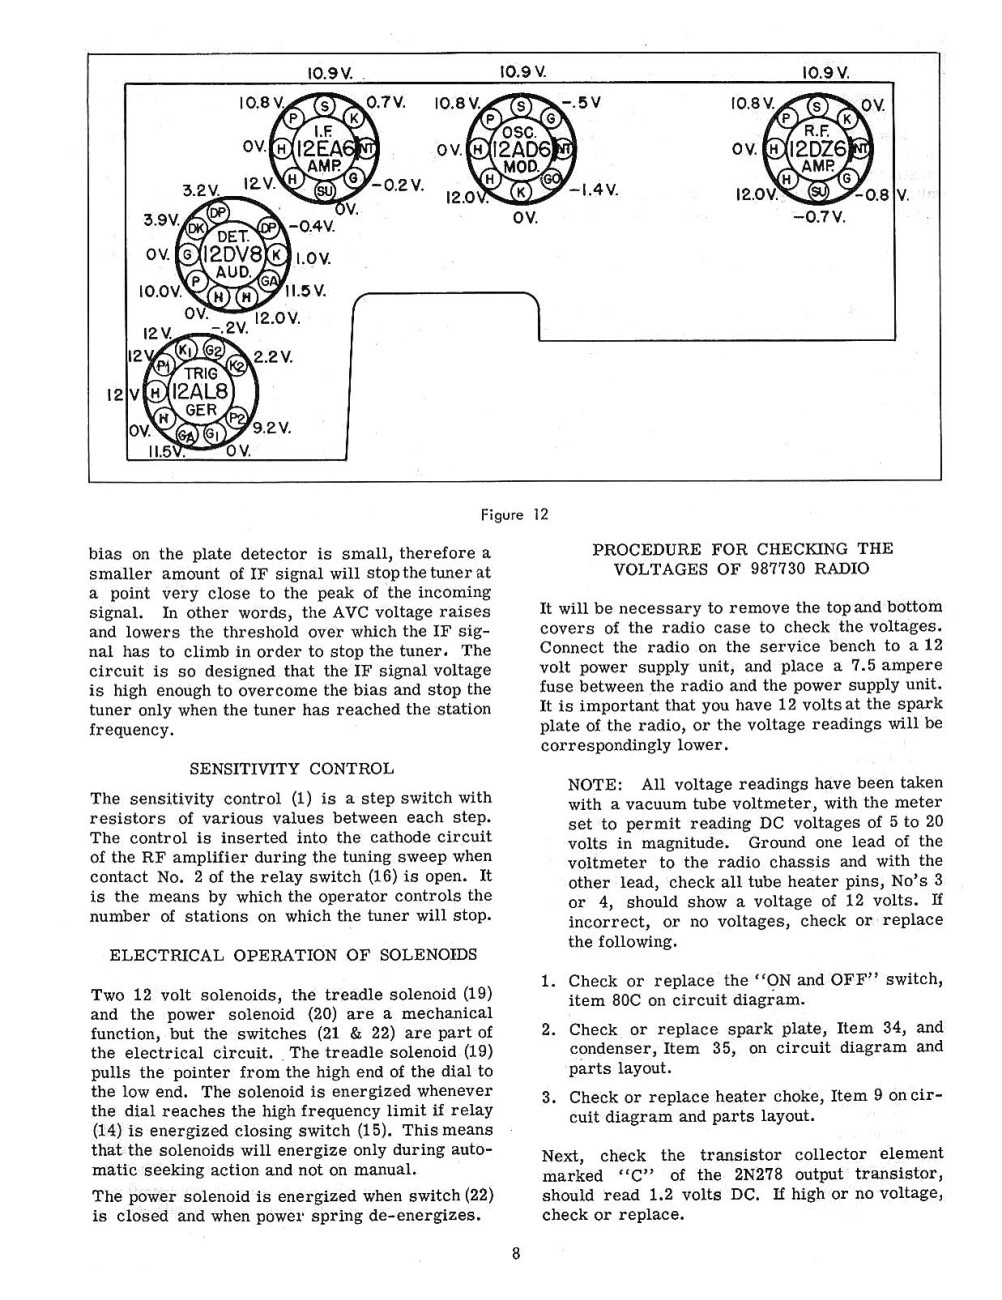 1958 chevrolet radio and autotronic eye service and shop manualAutronic Eye Circuit Diagram Of 1958 Chevrolet #9